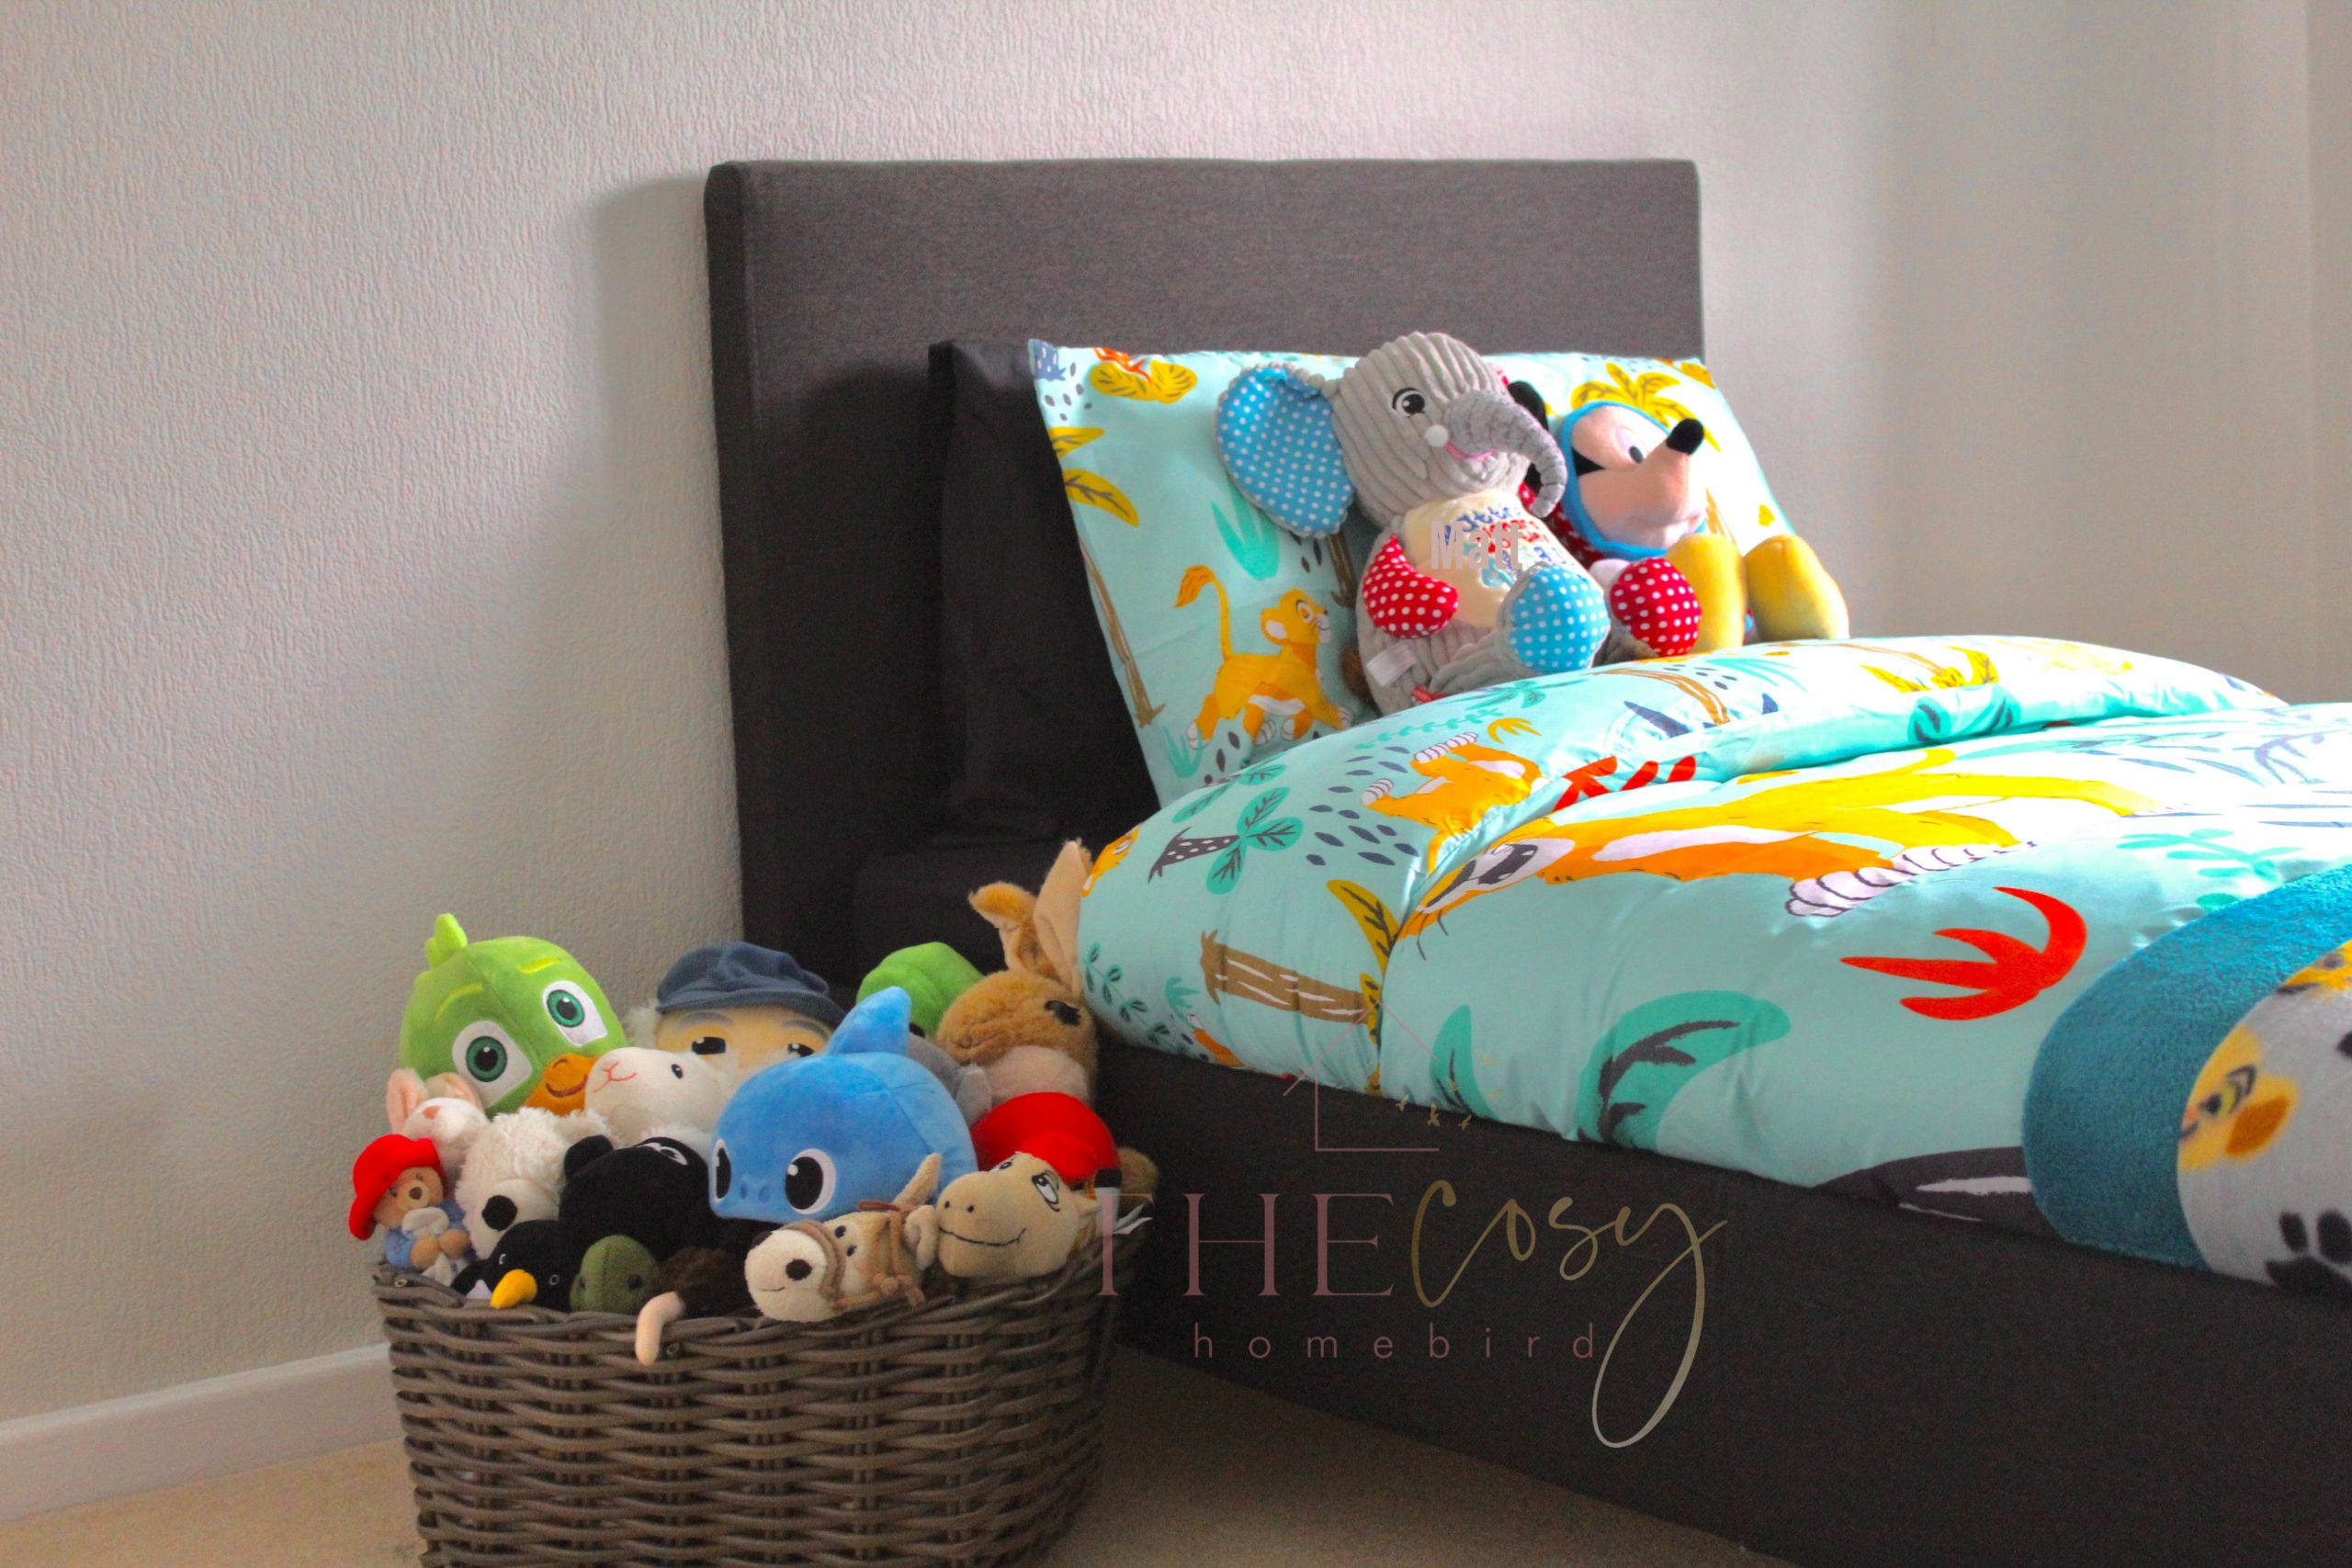 How I Decorated My Toddler Boy S Bedroom By Only Buying 3 Items During Lockdown The Cosy Homebird